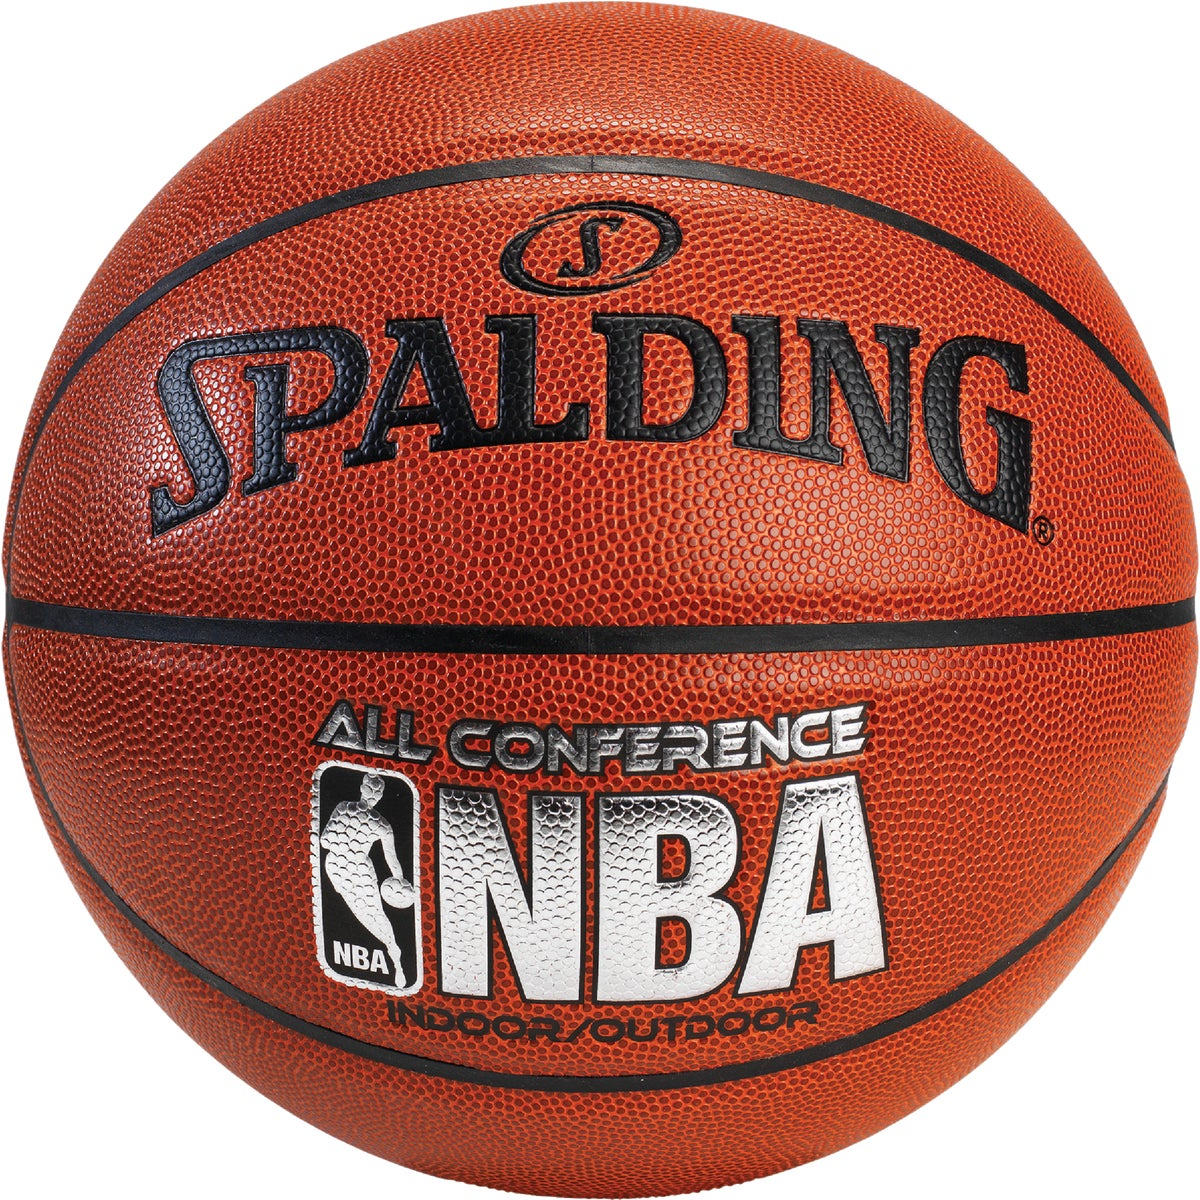 29.5 ALL CONF BASKETBALL - 74-803 by Spalding Sports